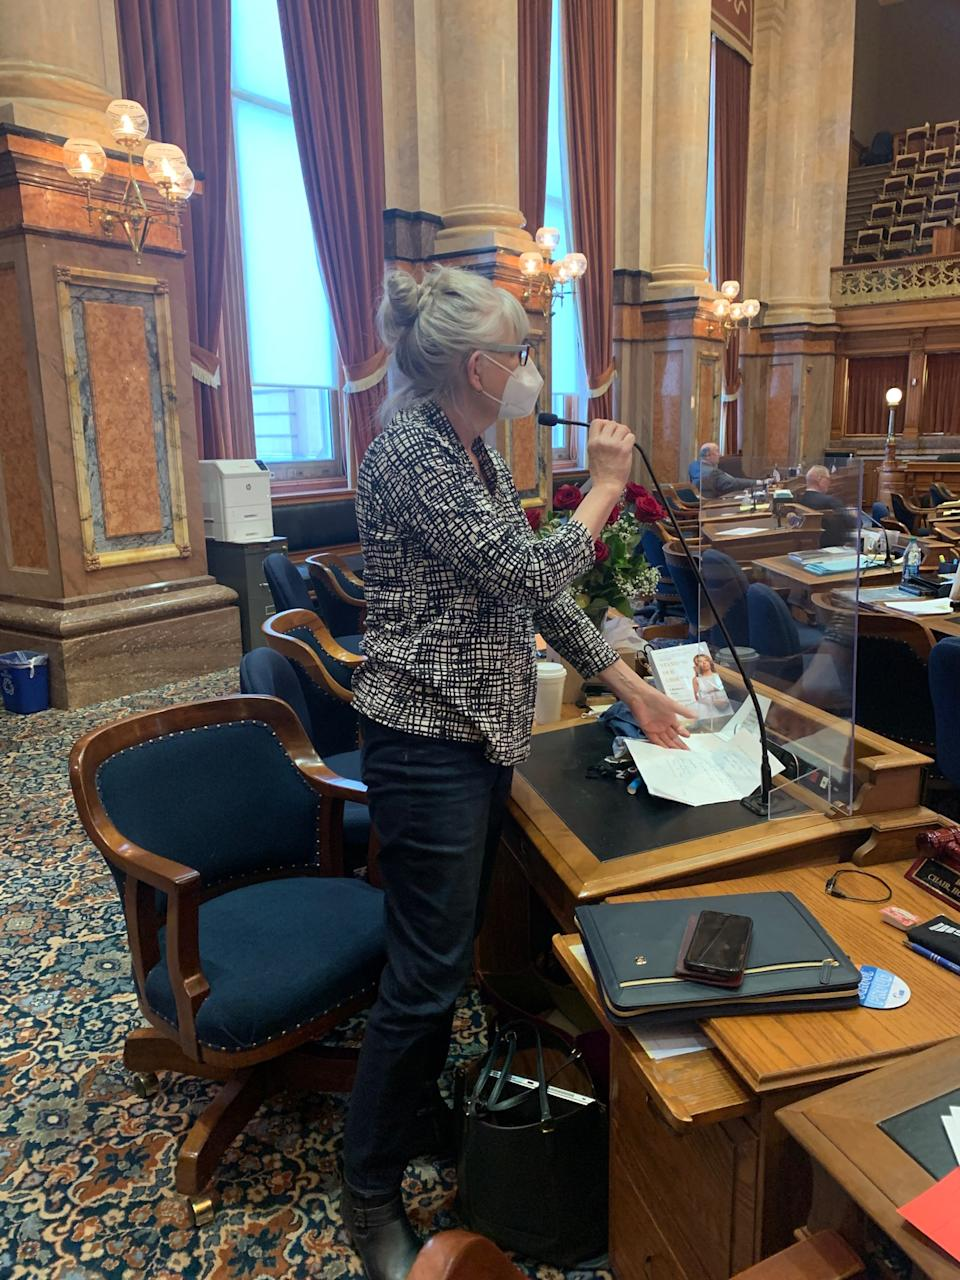 In February, Rep. Beth Wessel-Kroeschell broke an Iowa Capitol dress code by wearing jeans to the House floor, to protest the building's lack of mask mandate. (Photo: Courtesy of Rep. Beth Wessel-Kroeschell)